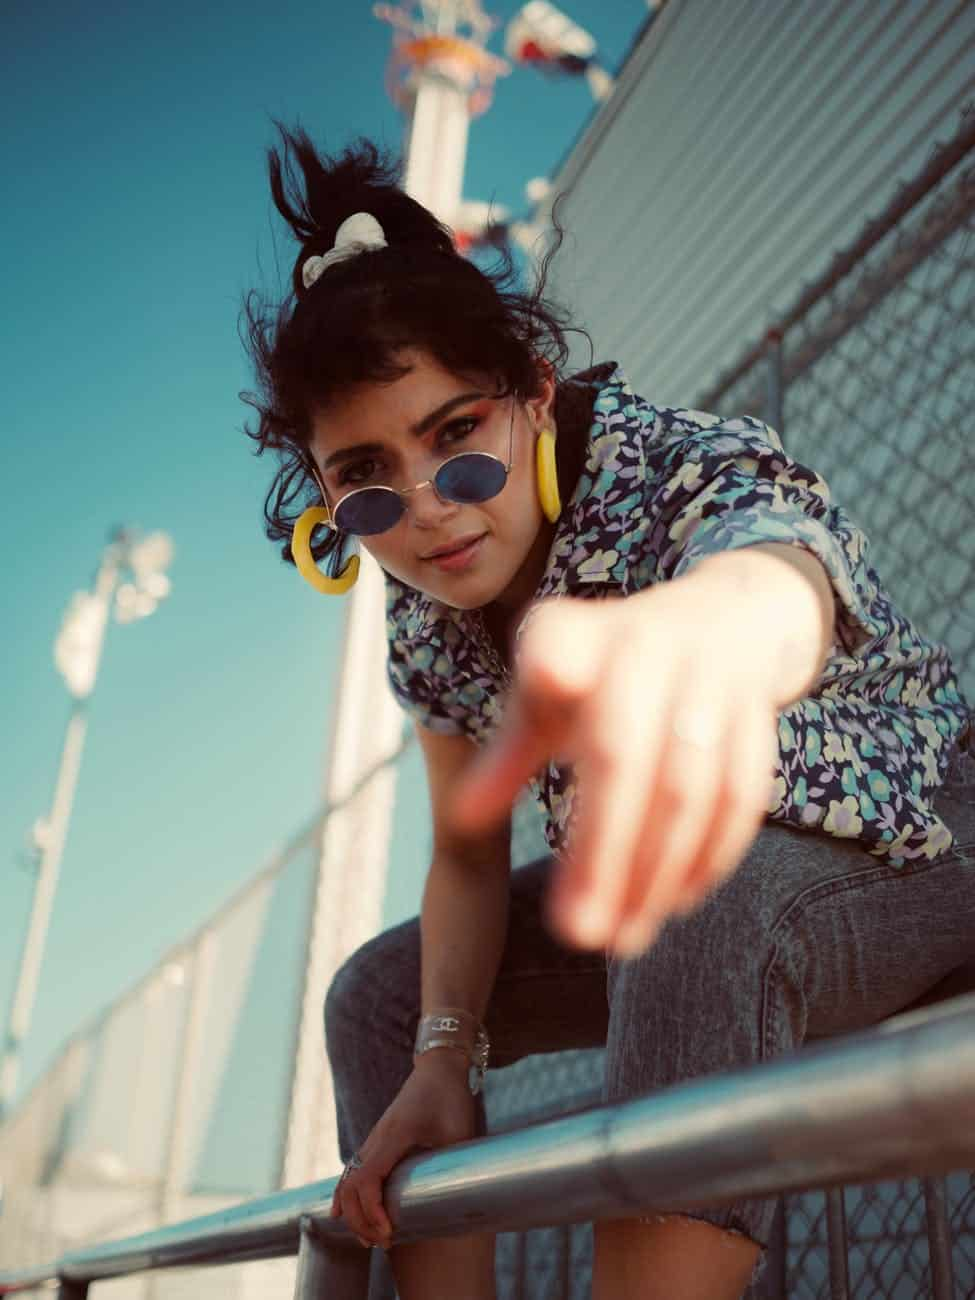 selective focus photo of woman in floral shirt grey jeans and sunglasses pointing finger